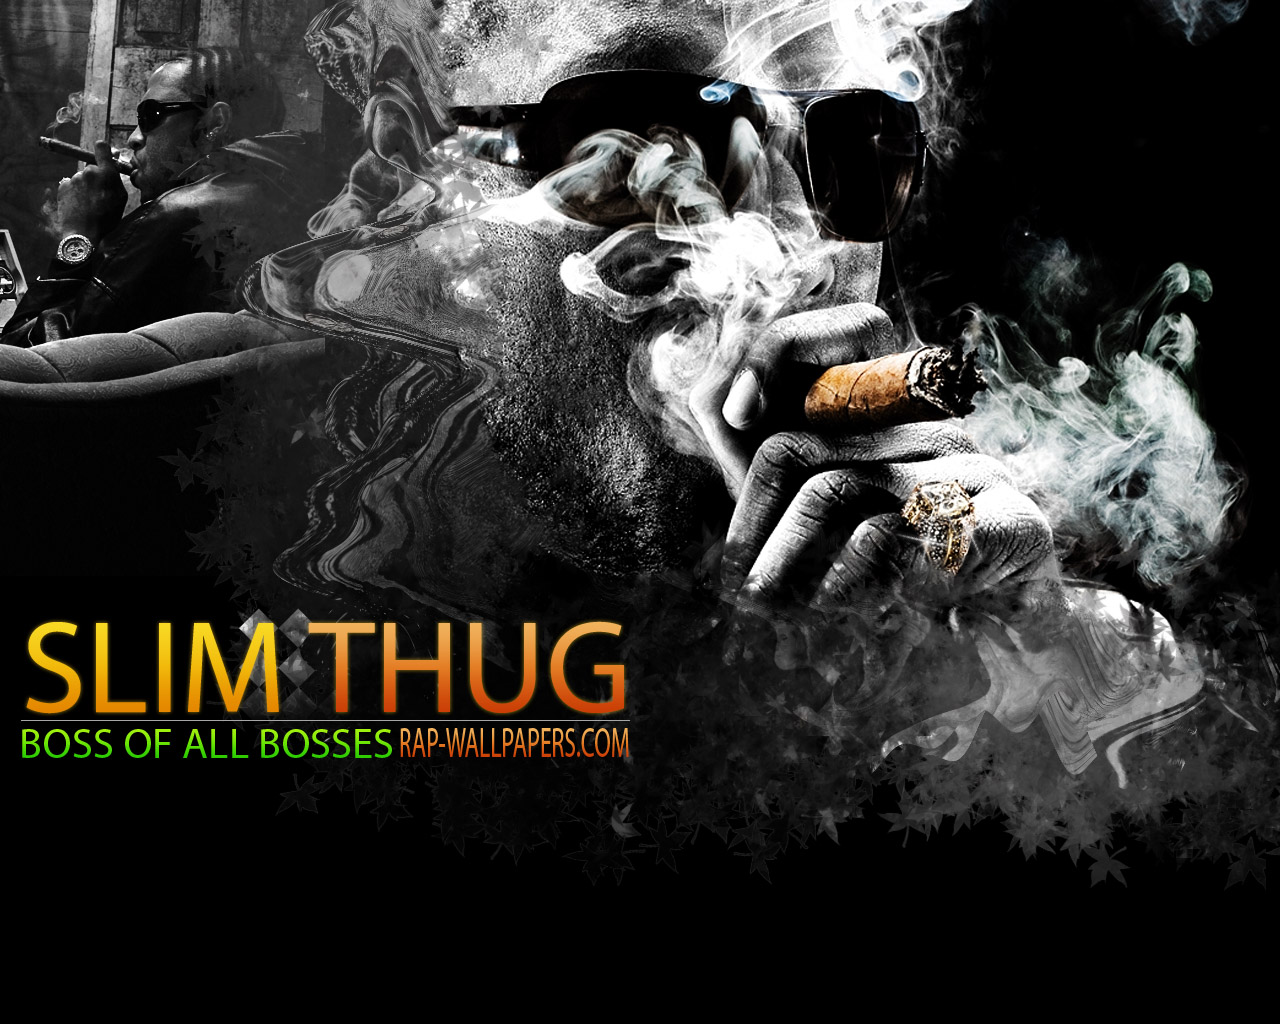 Slim Thug Boss of all Bosses